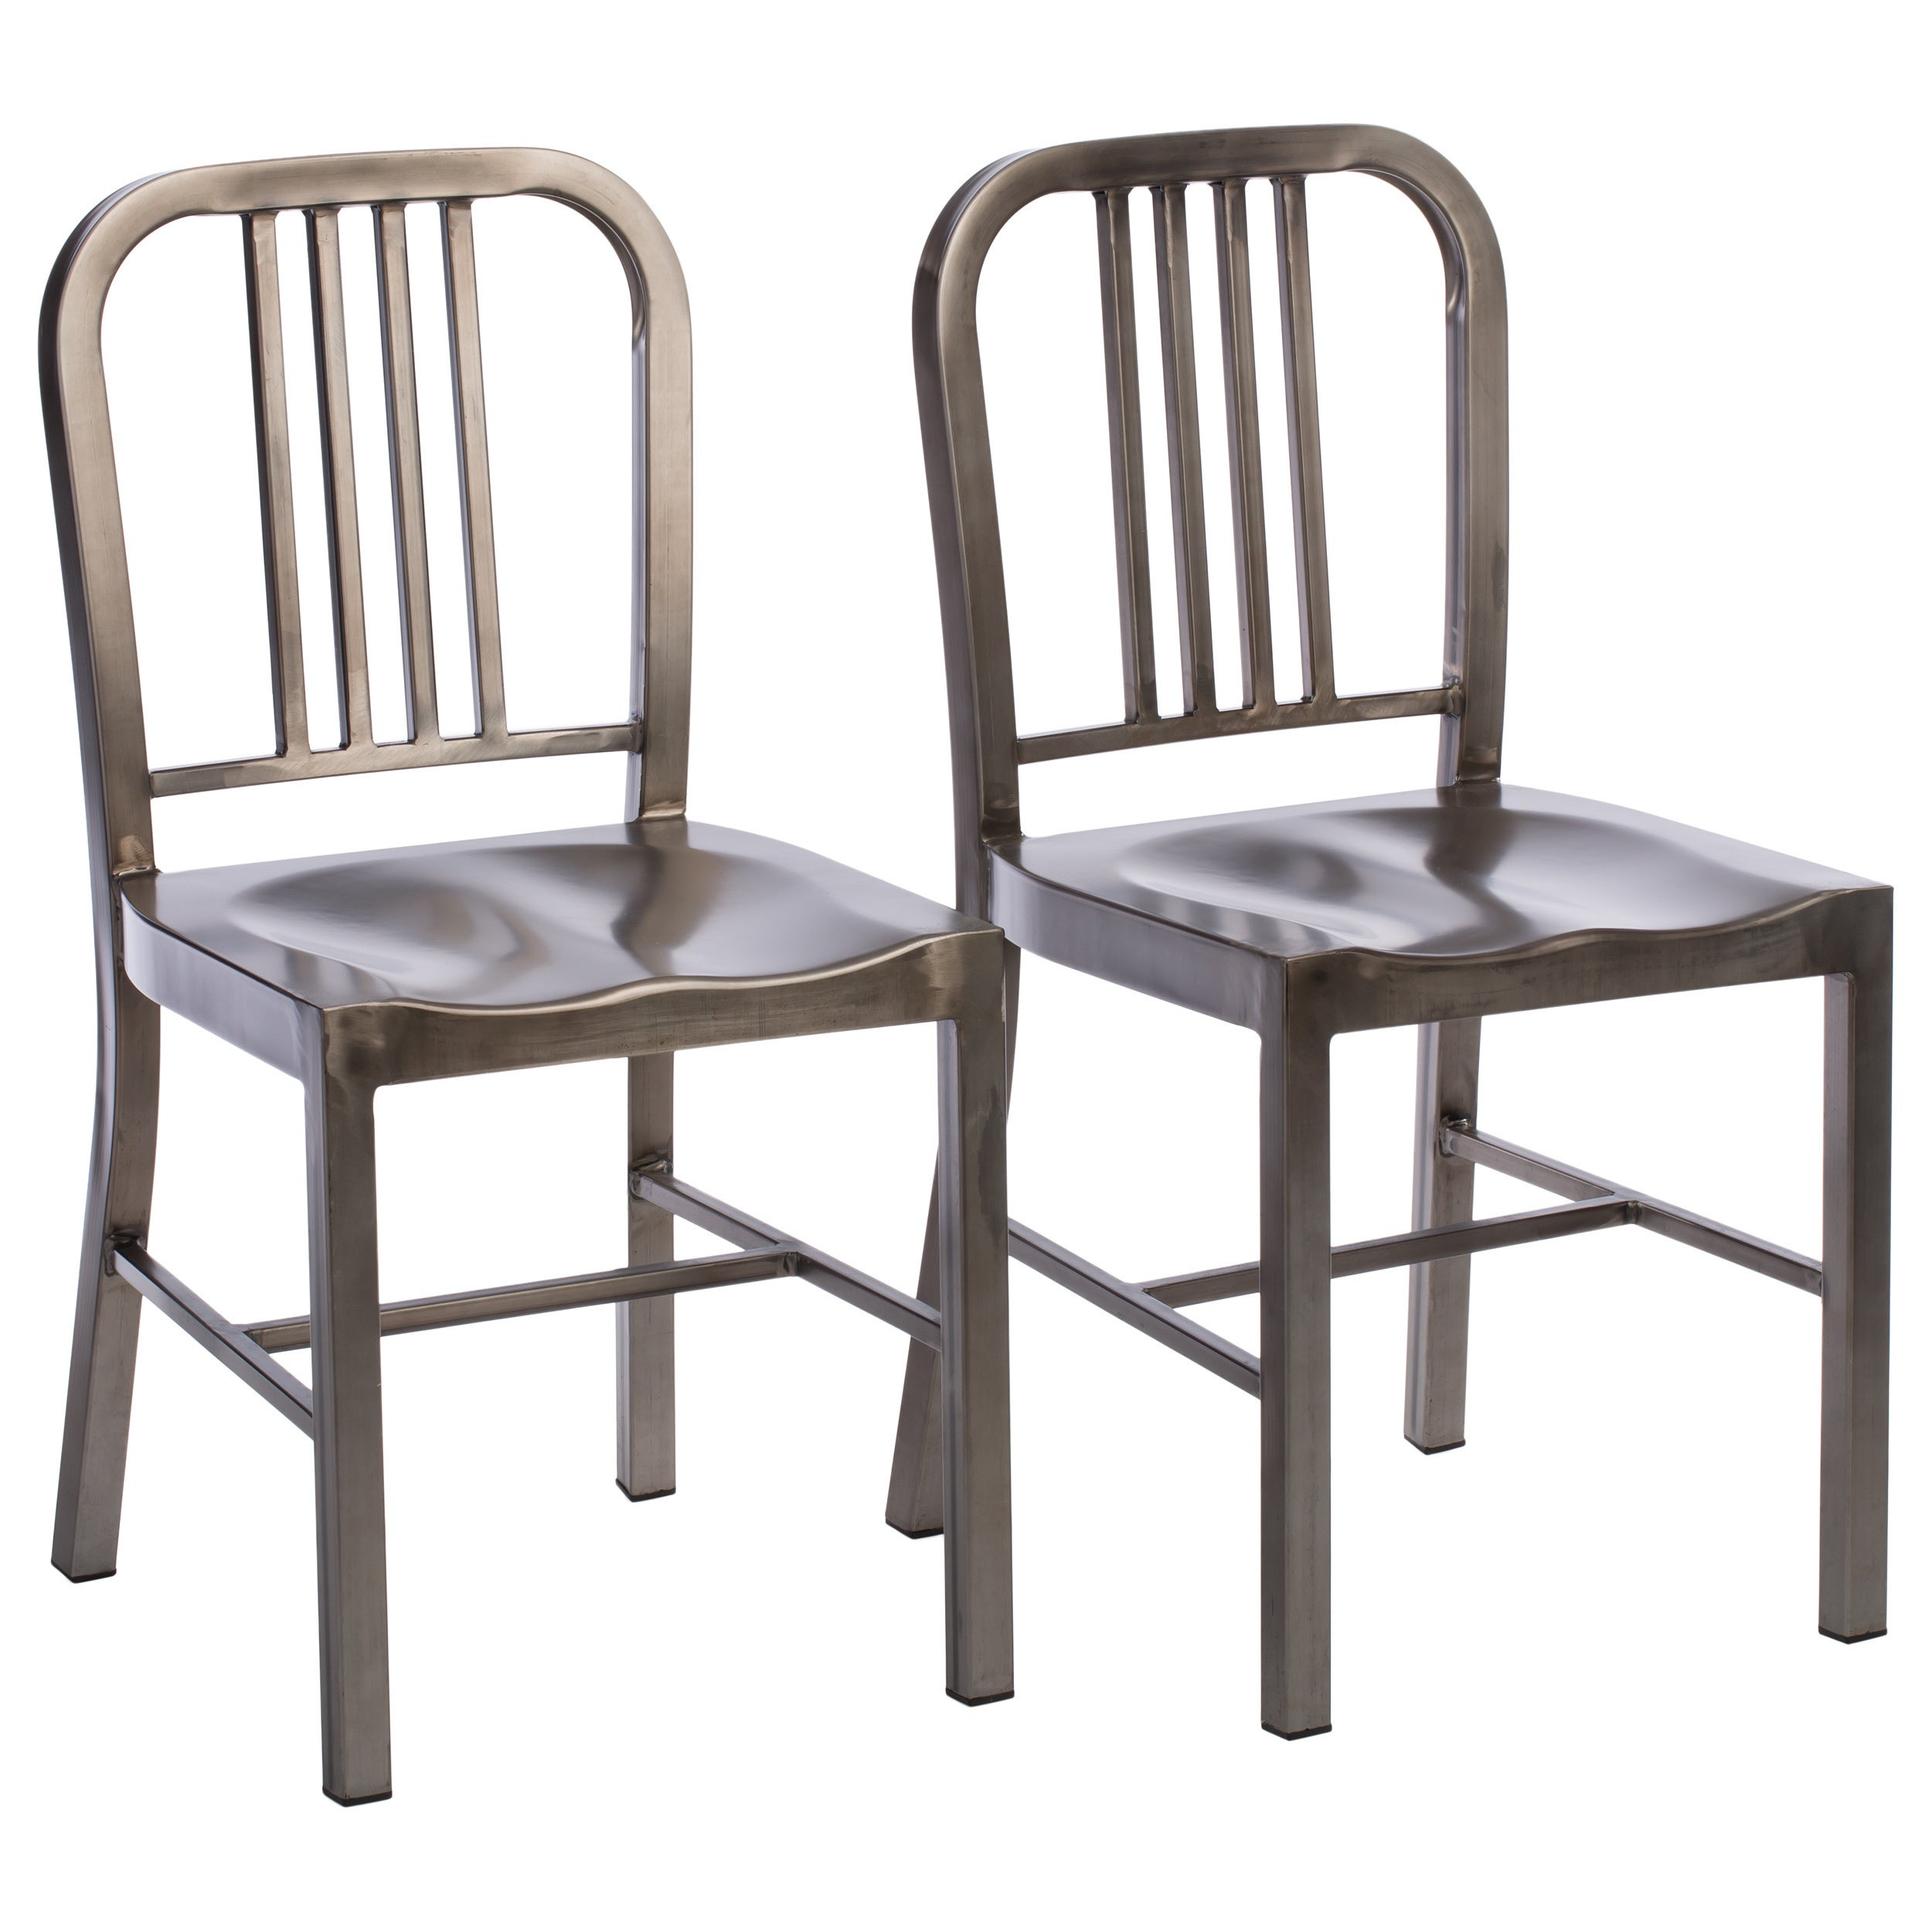 Attractive Clay Alder Home Vintage Metal Dining Chairs (Set Of 2)   Free Shipping  Today   Overstock   15446939